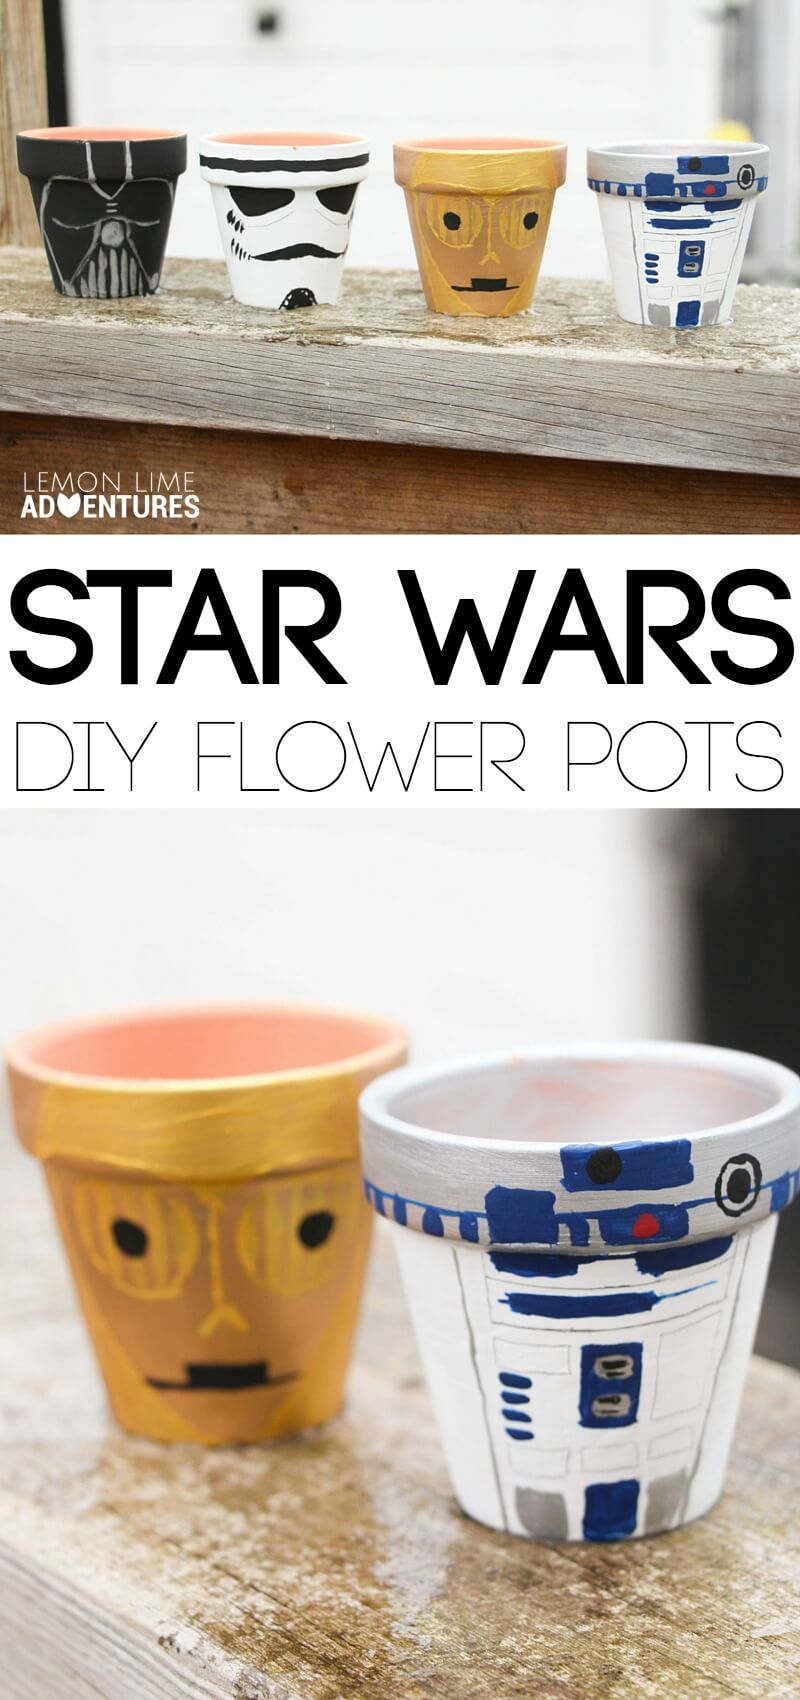 star wars garden pot tutorial (1)